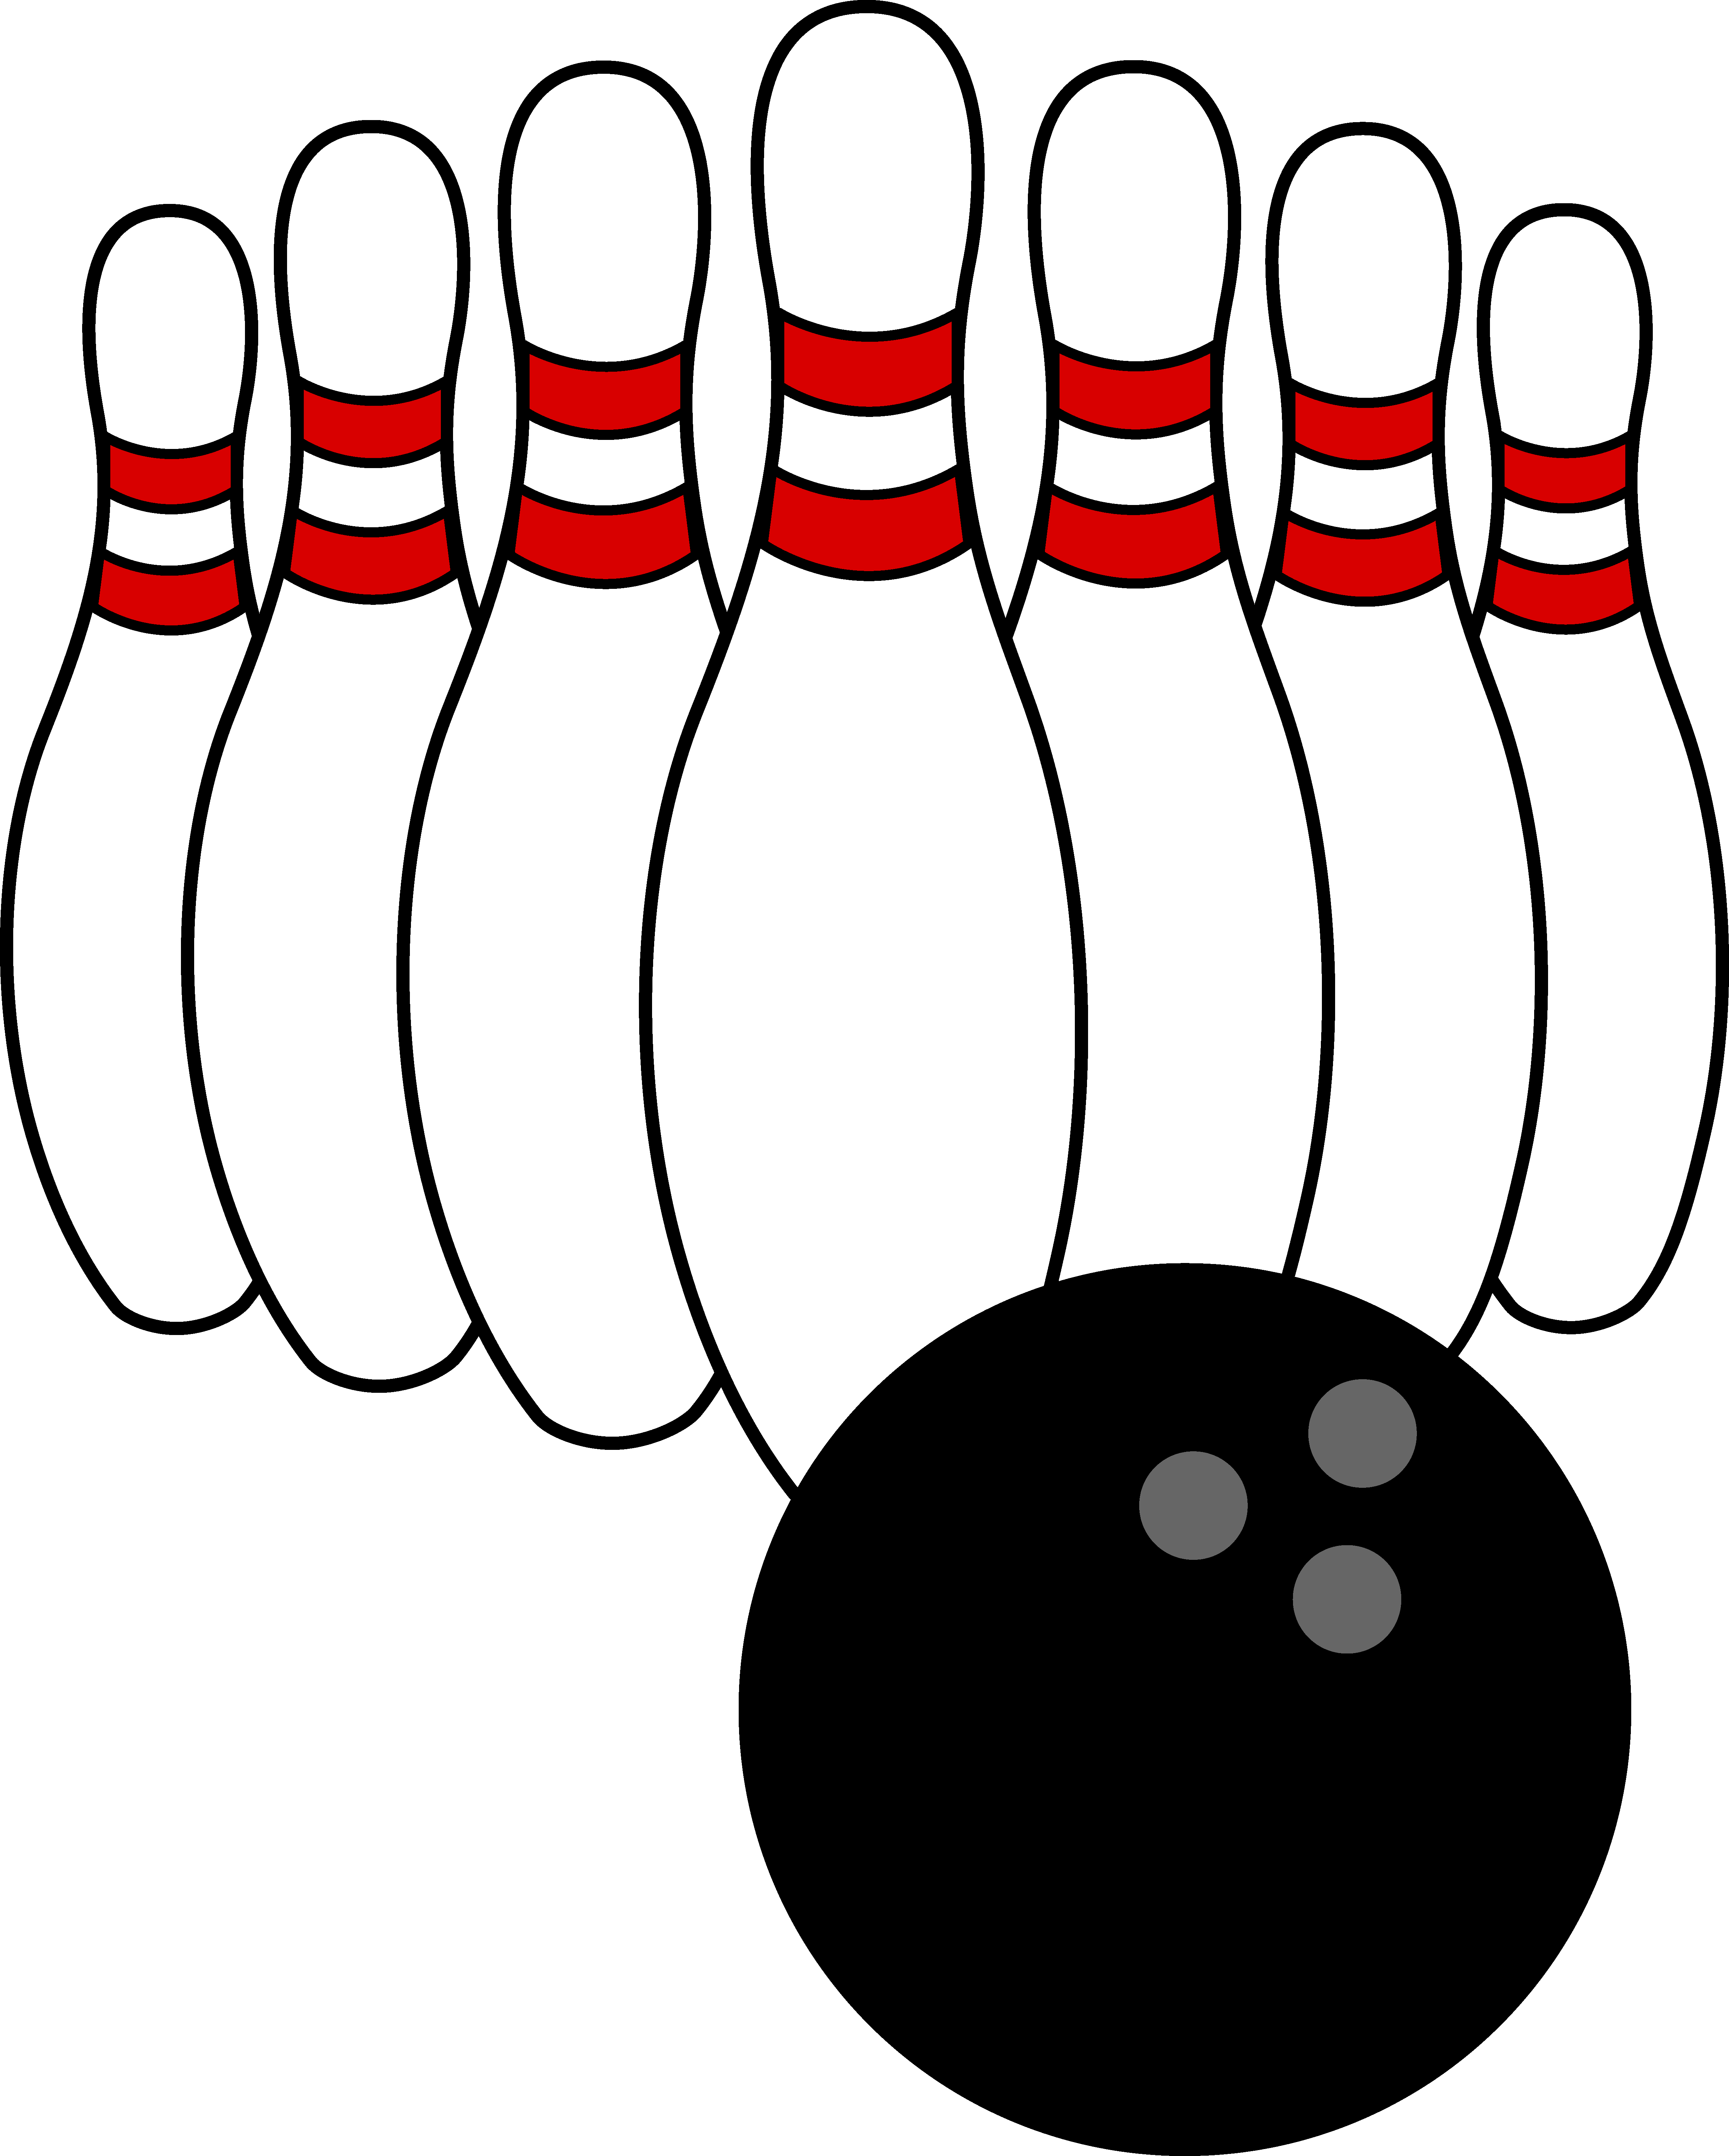 Bowling pictures clipart png library stock Bowling Clip Art | Bowling Ball and Pins | BOWLING | Bowling ball ... png library stock